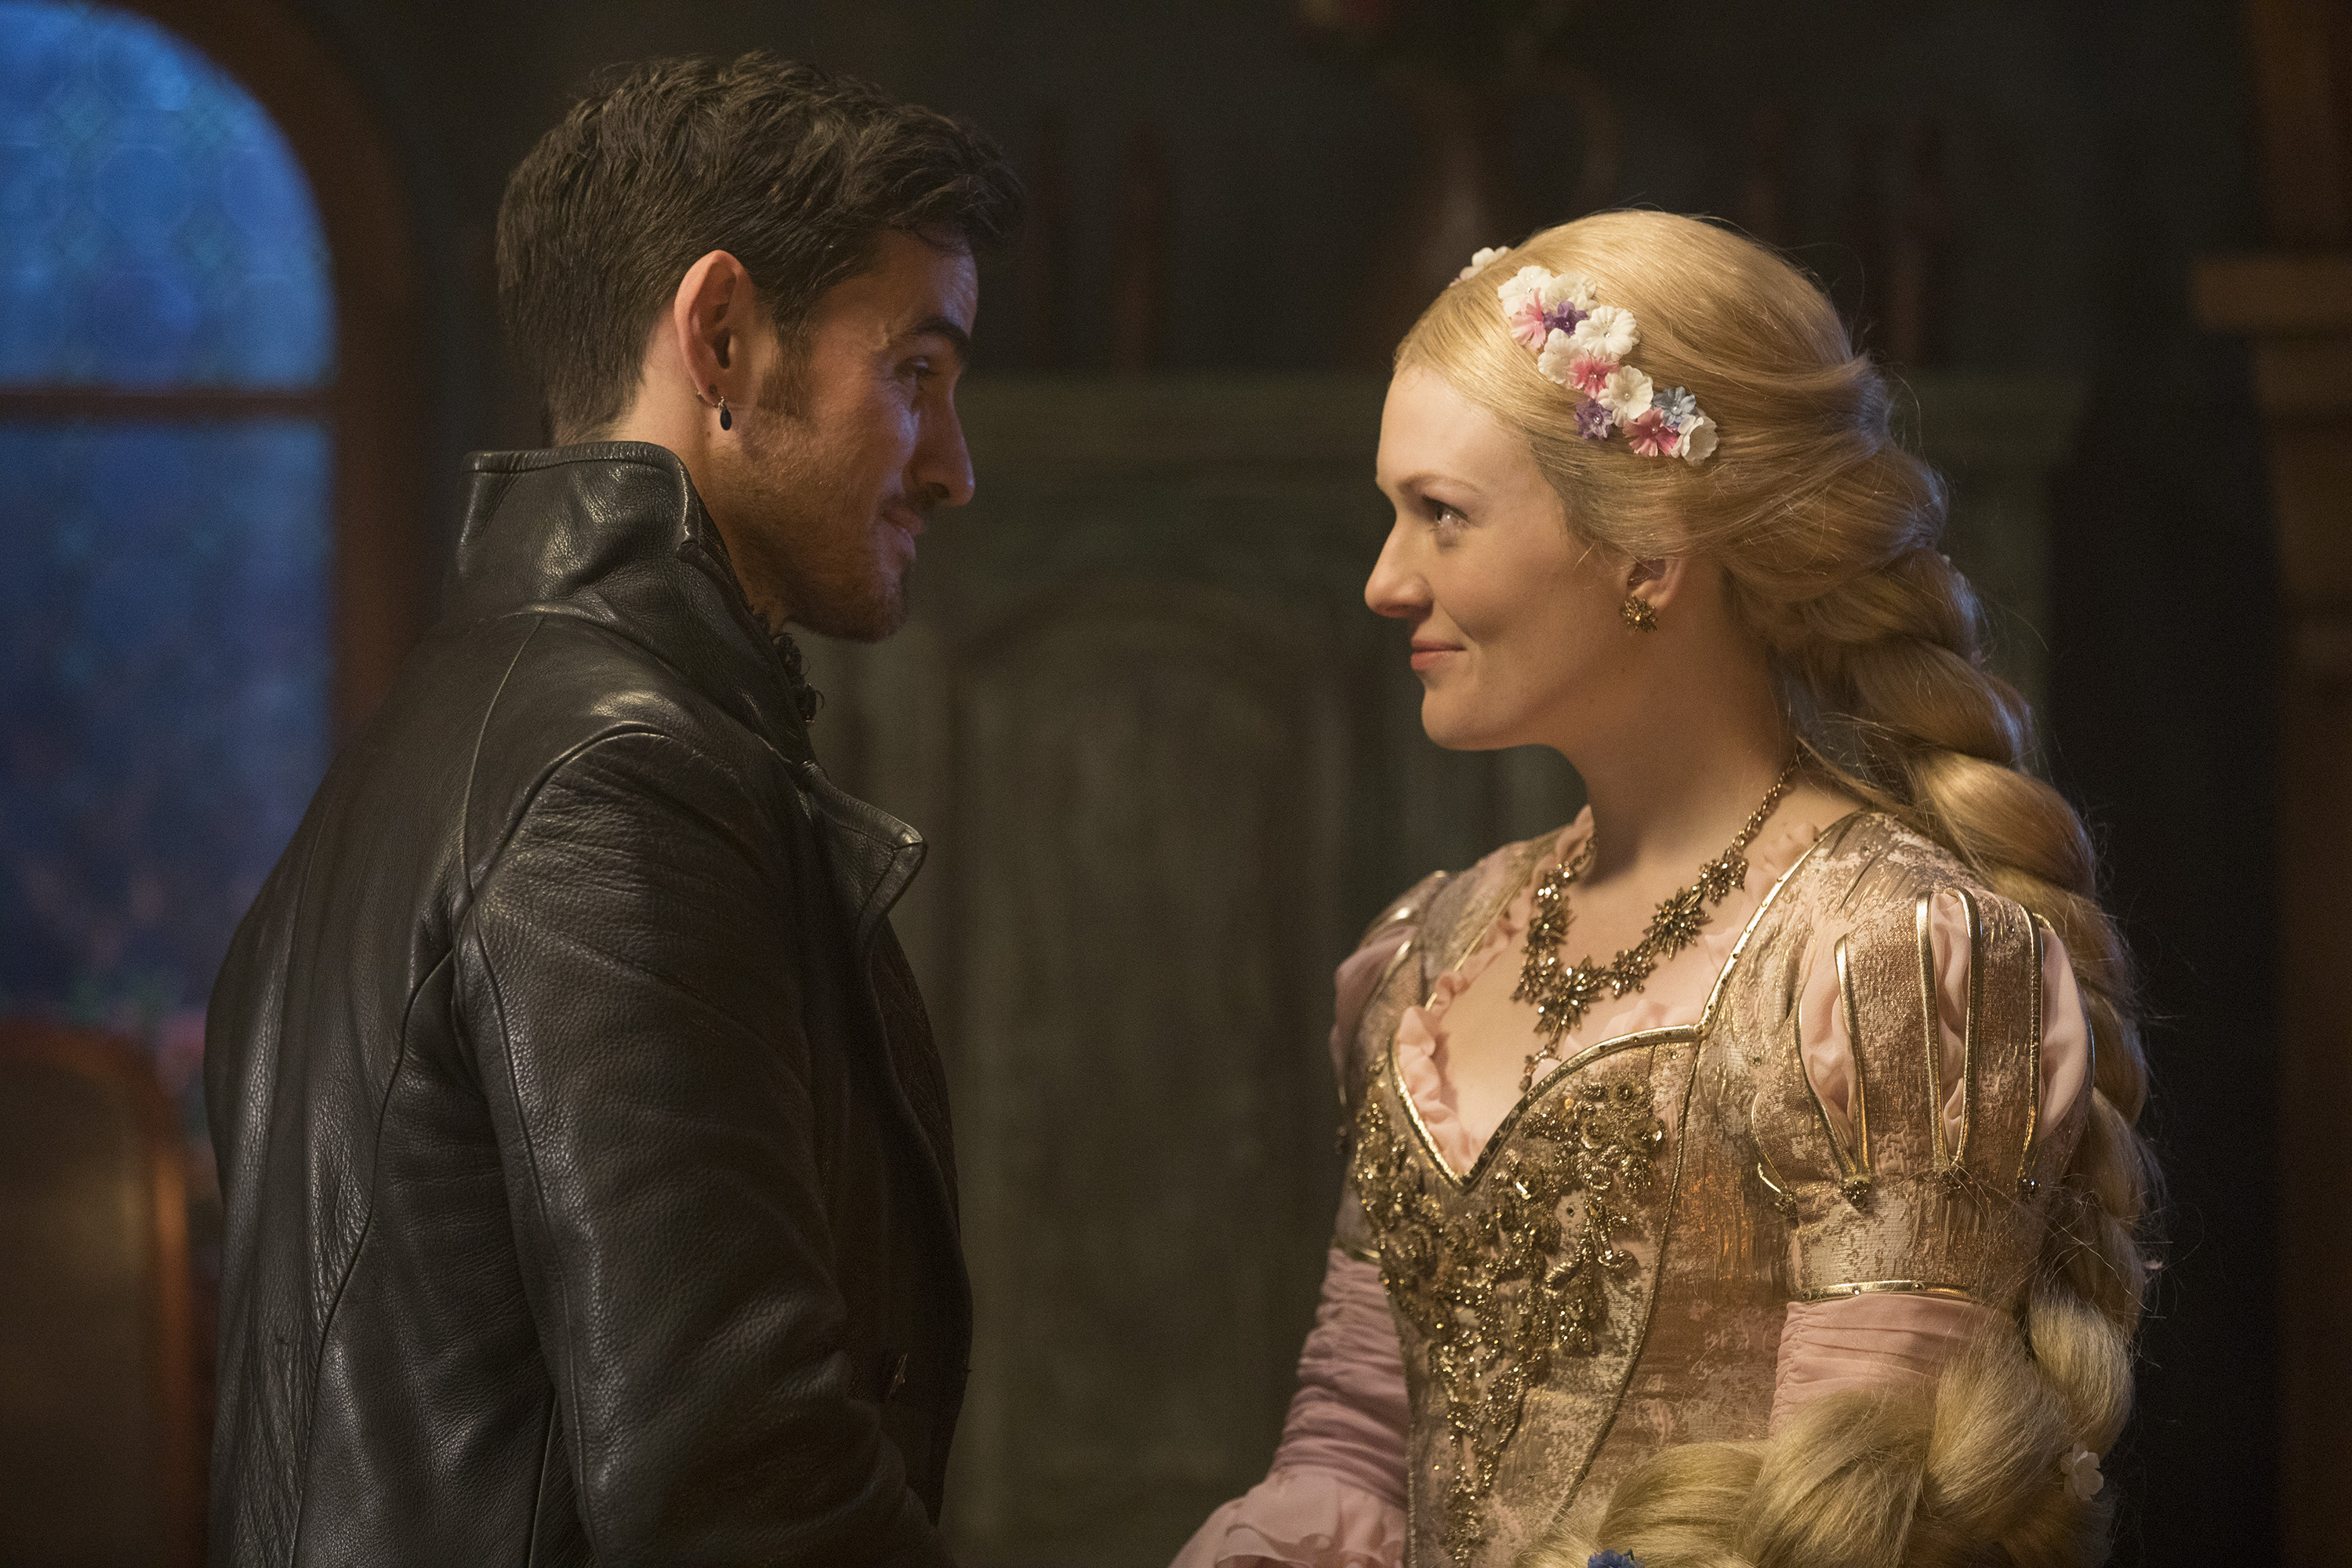 Once upon a time air dates in Melbourne